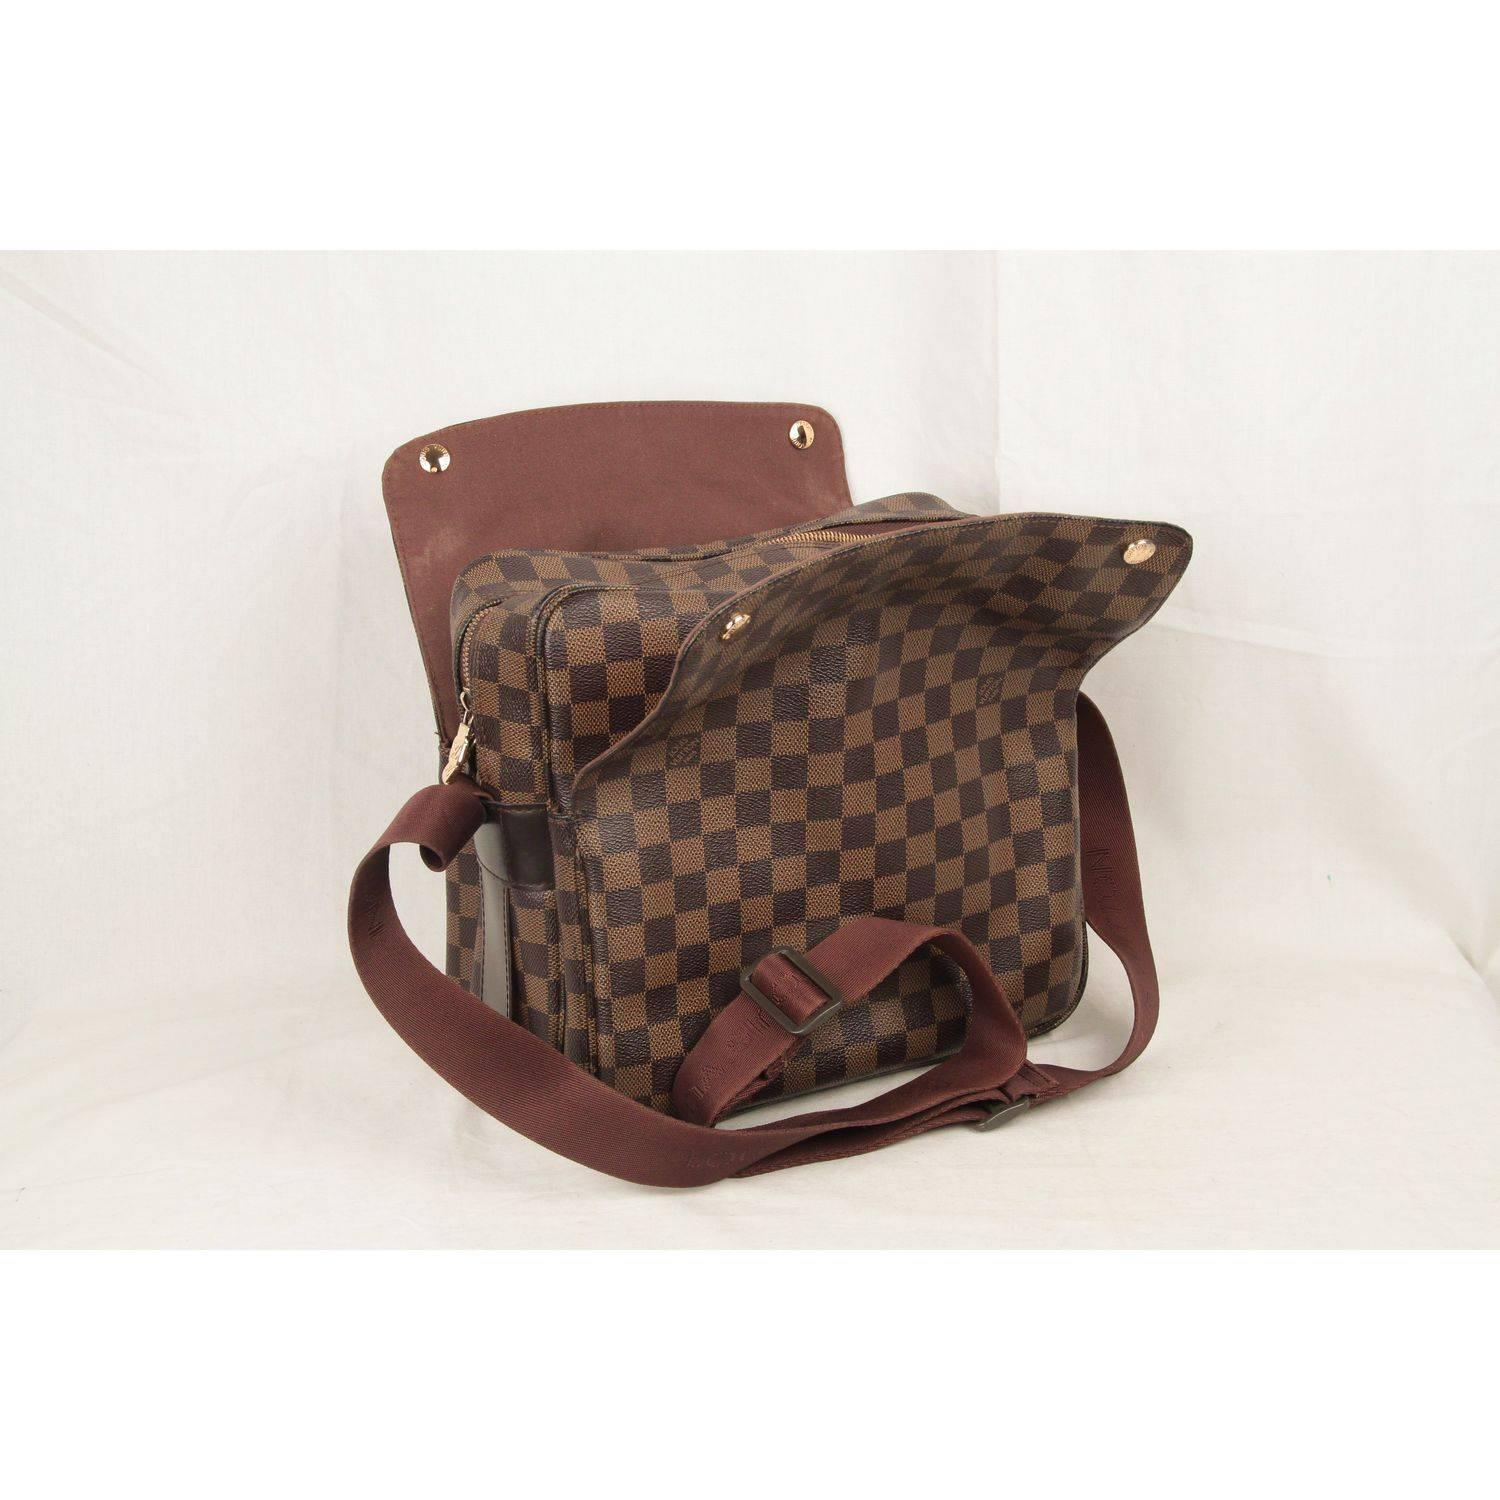 b109dac00f5e Louis Vuitton Brown Damier Ebene Canvas Naviglio Messenger Bag For Sale at  1stdibs